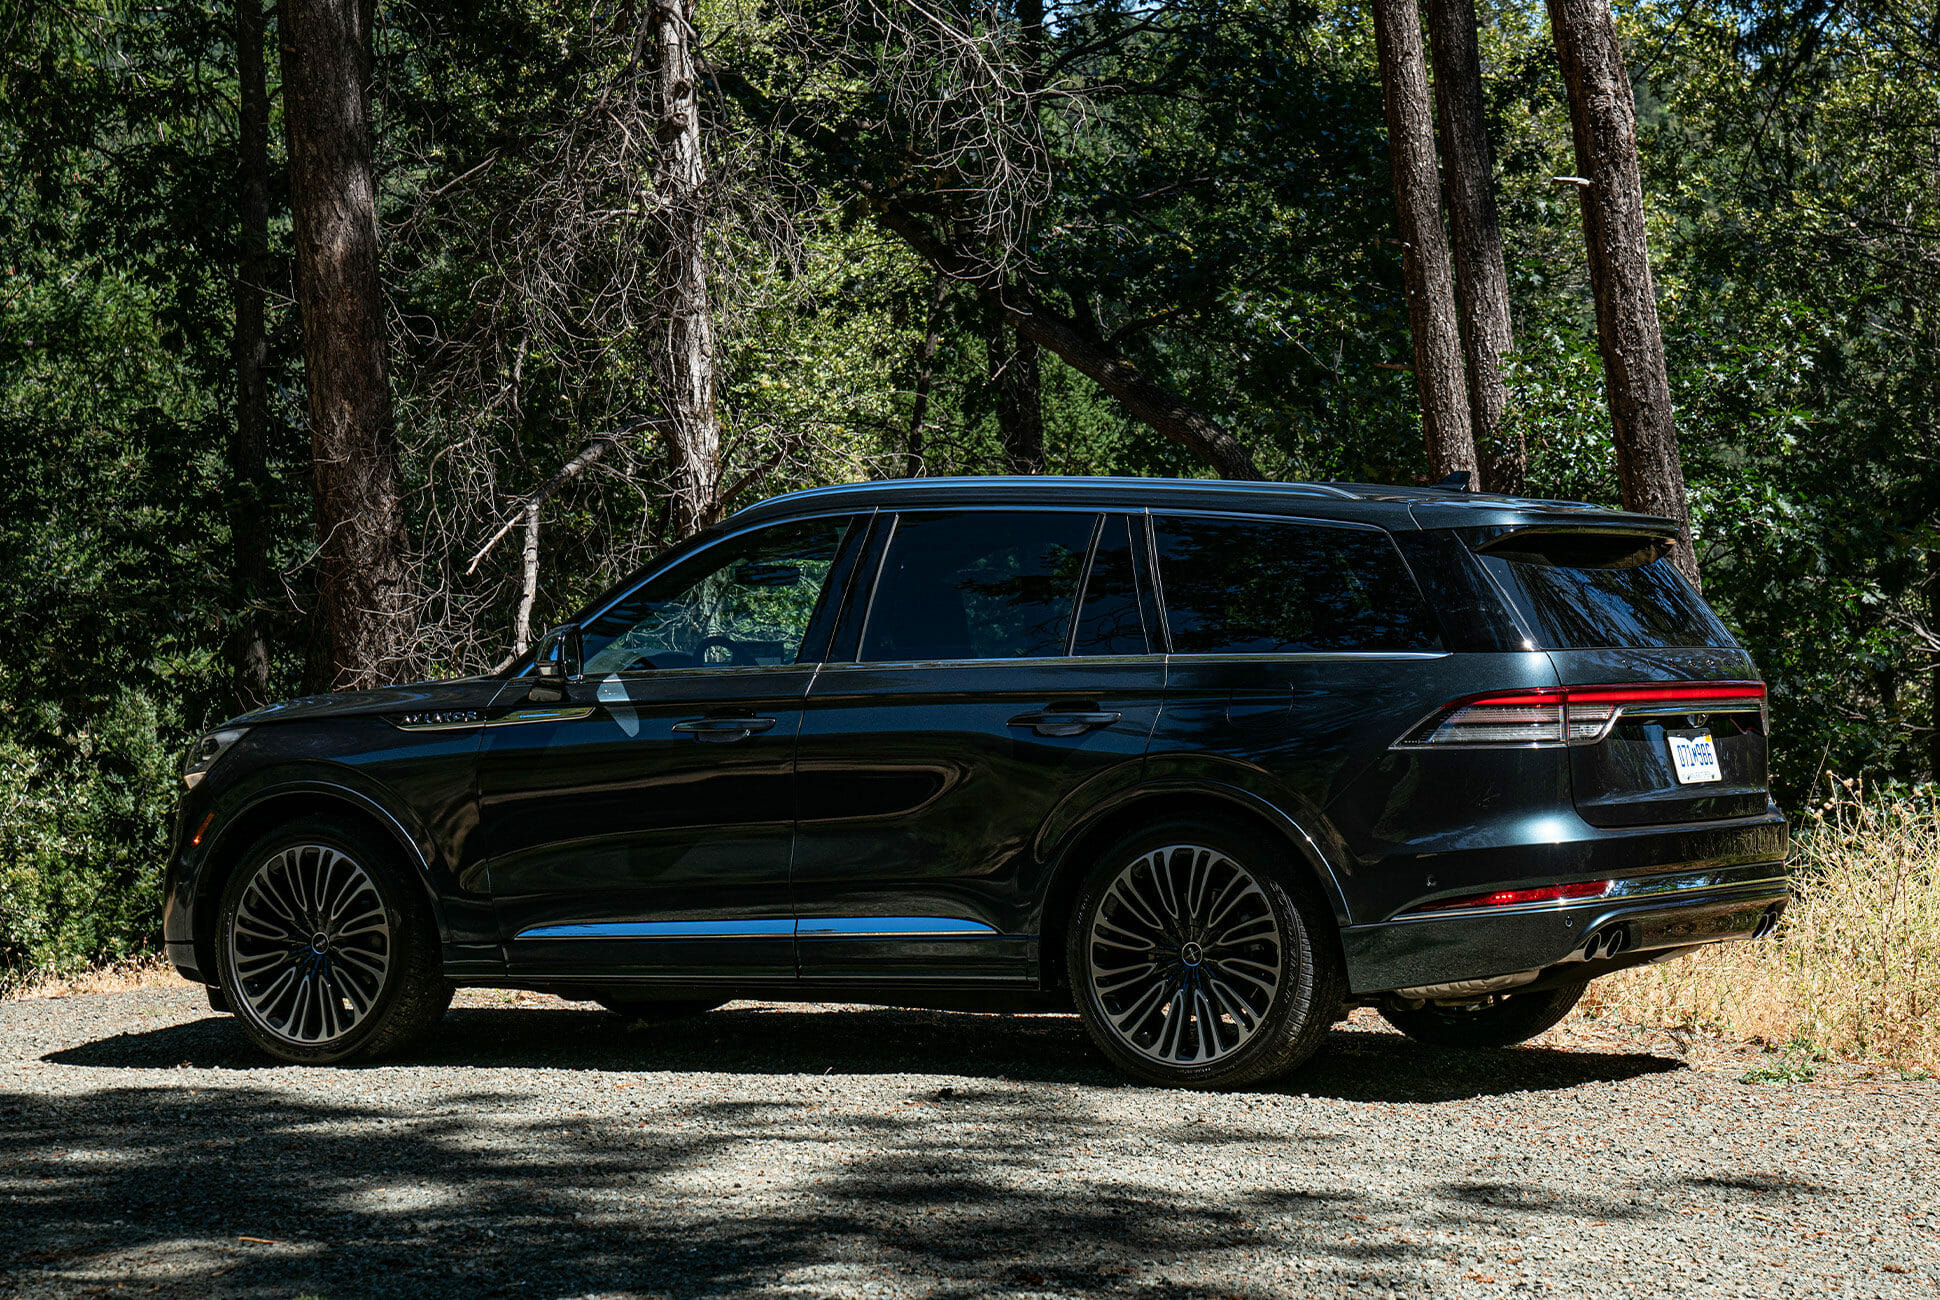 2020-Lincoln-Aviator-Review-gear-patrol-lead-slide-3